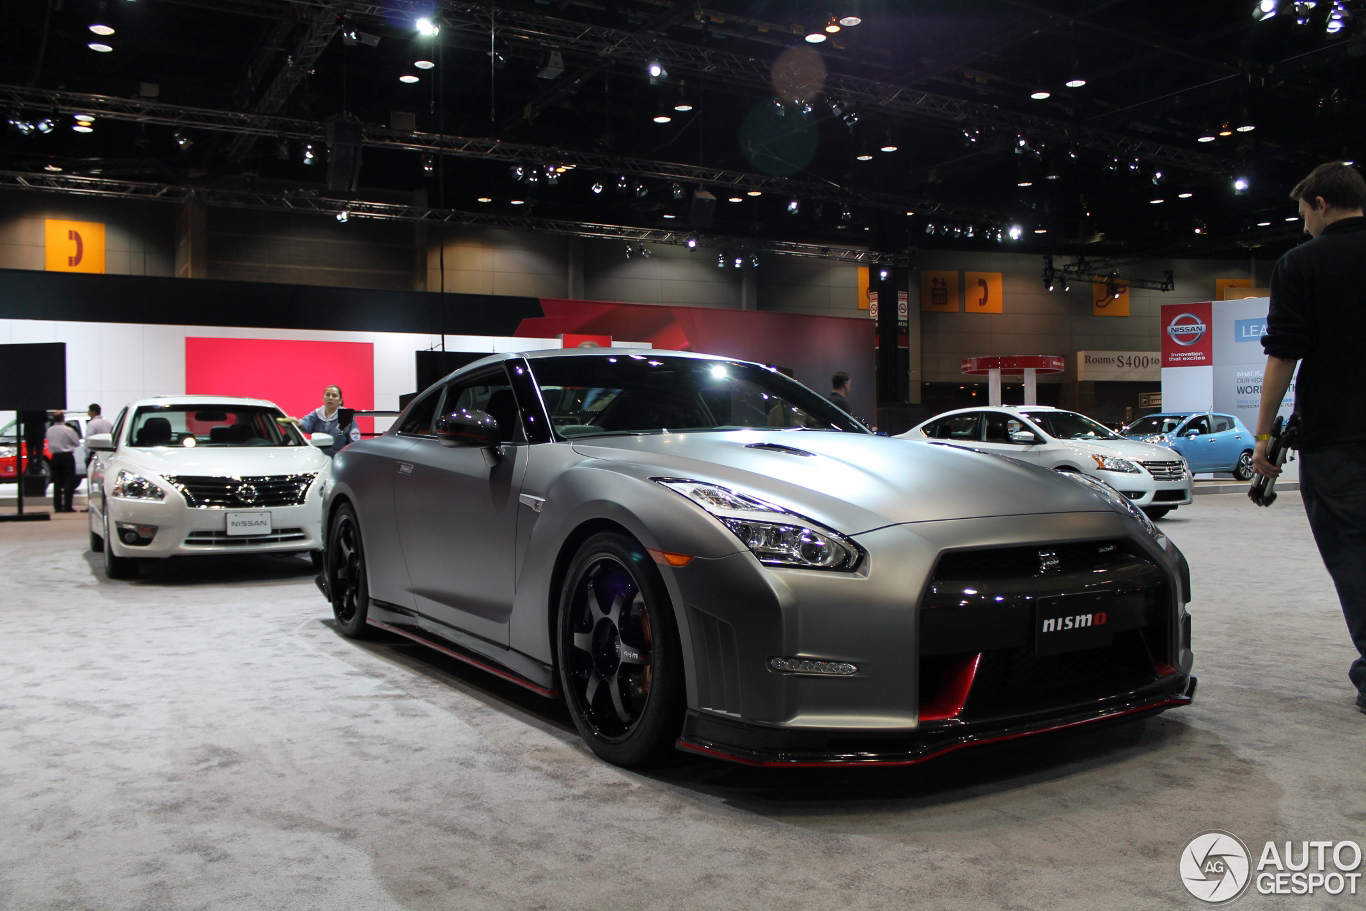 chicago auto show 2014 nissan gt r nismo. Black Bedroom Furniture Sets. Home Design Ideas